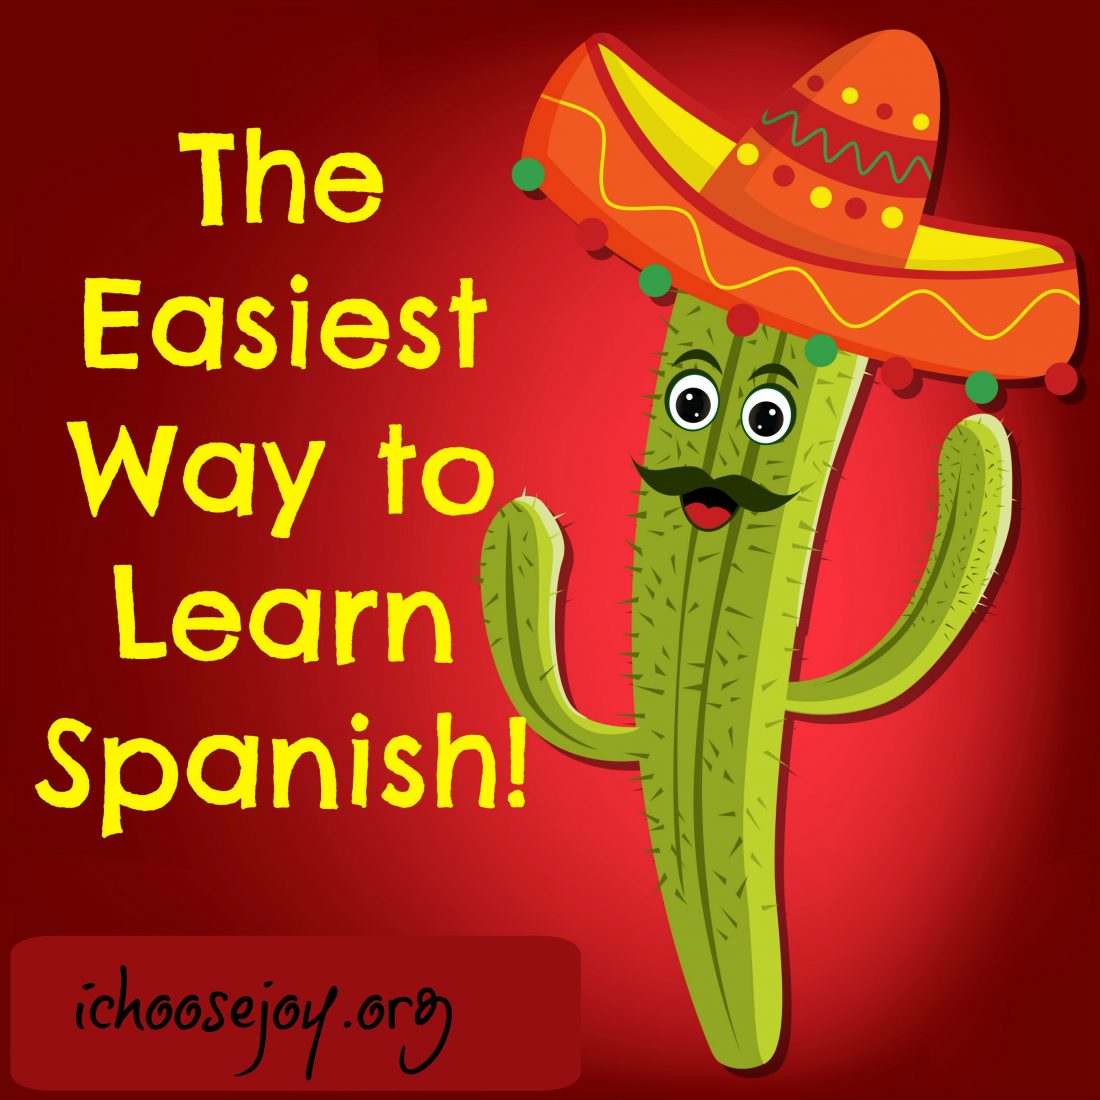 The Easiest Way to Learn Spanish!